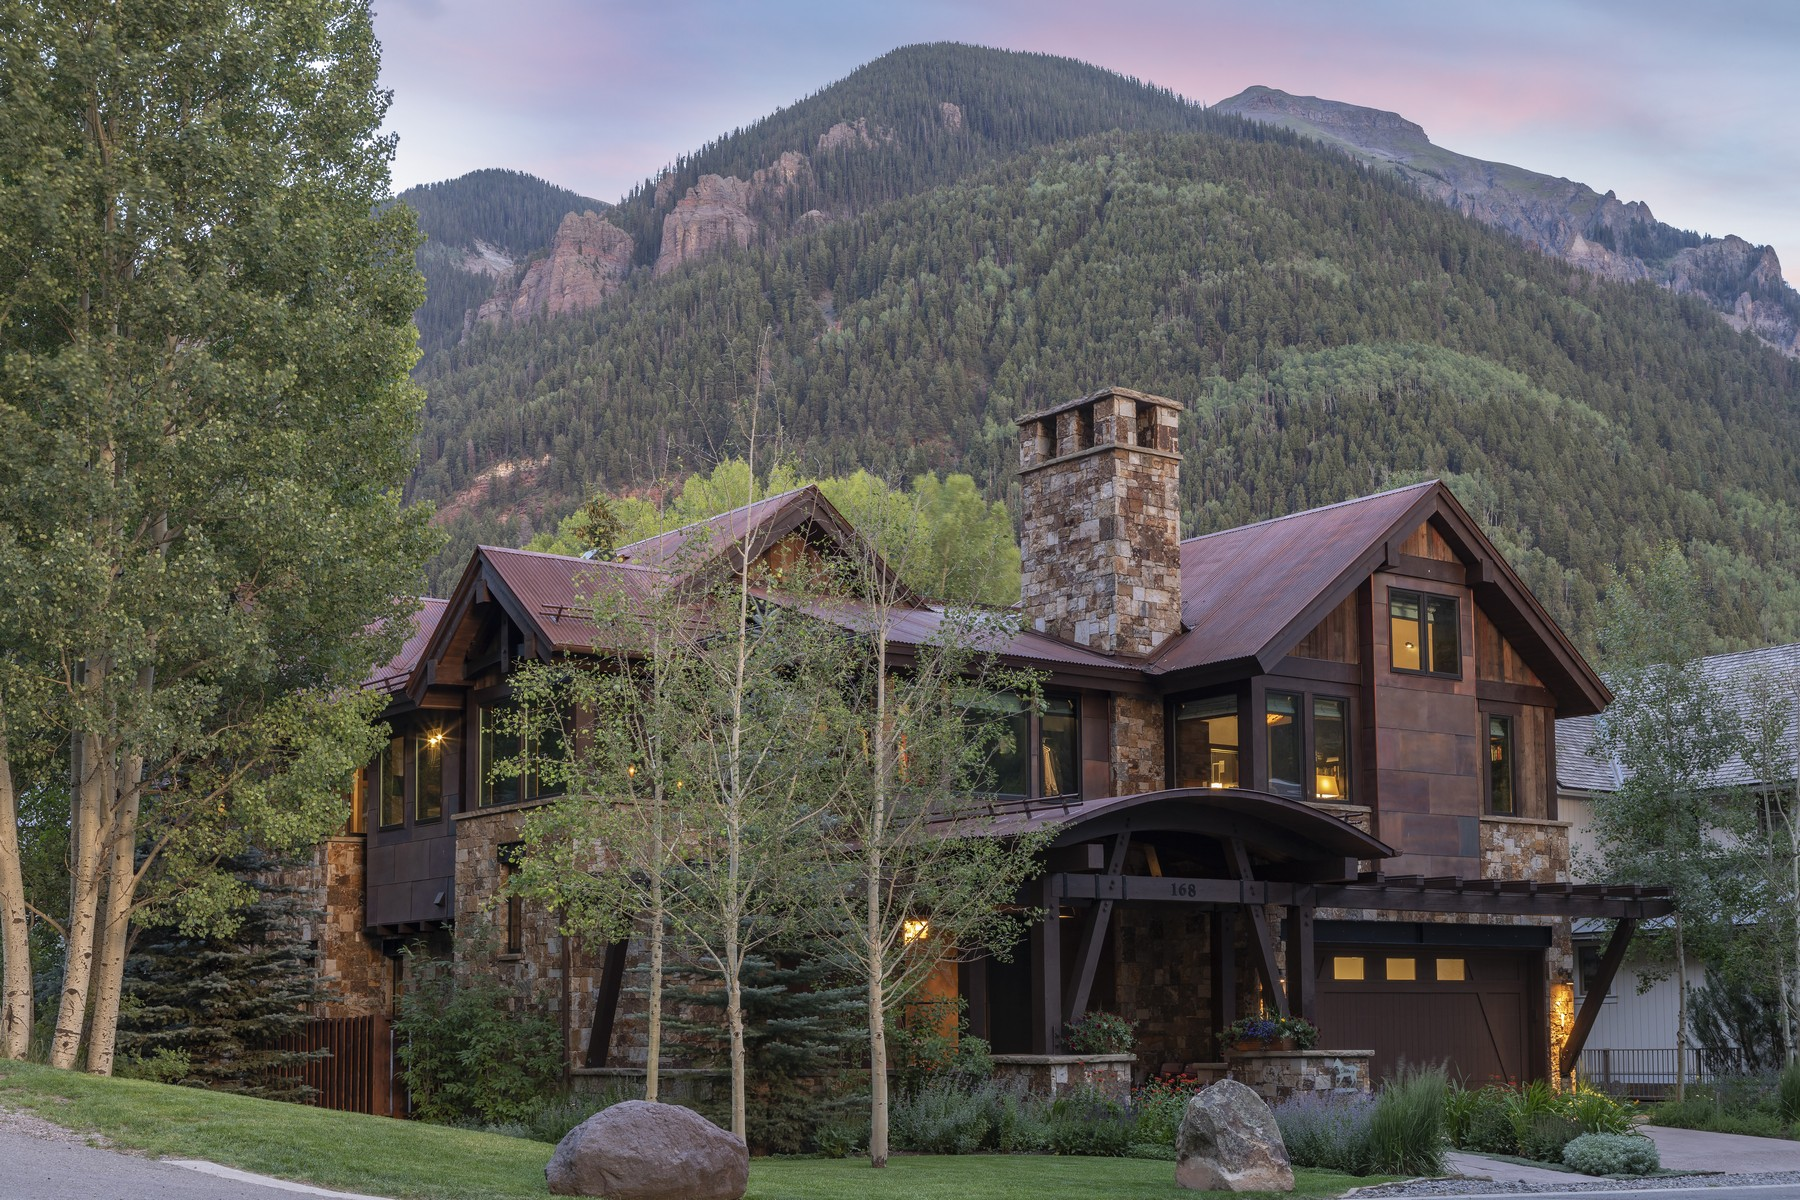 Single Family Home for Active at 168 Hemlock Street 168 Hemlock Street Telluride, Colorado 81435 United States